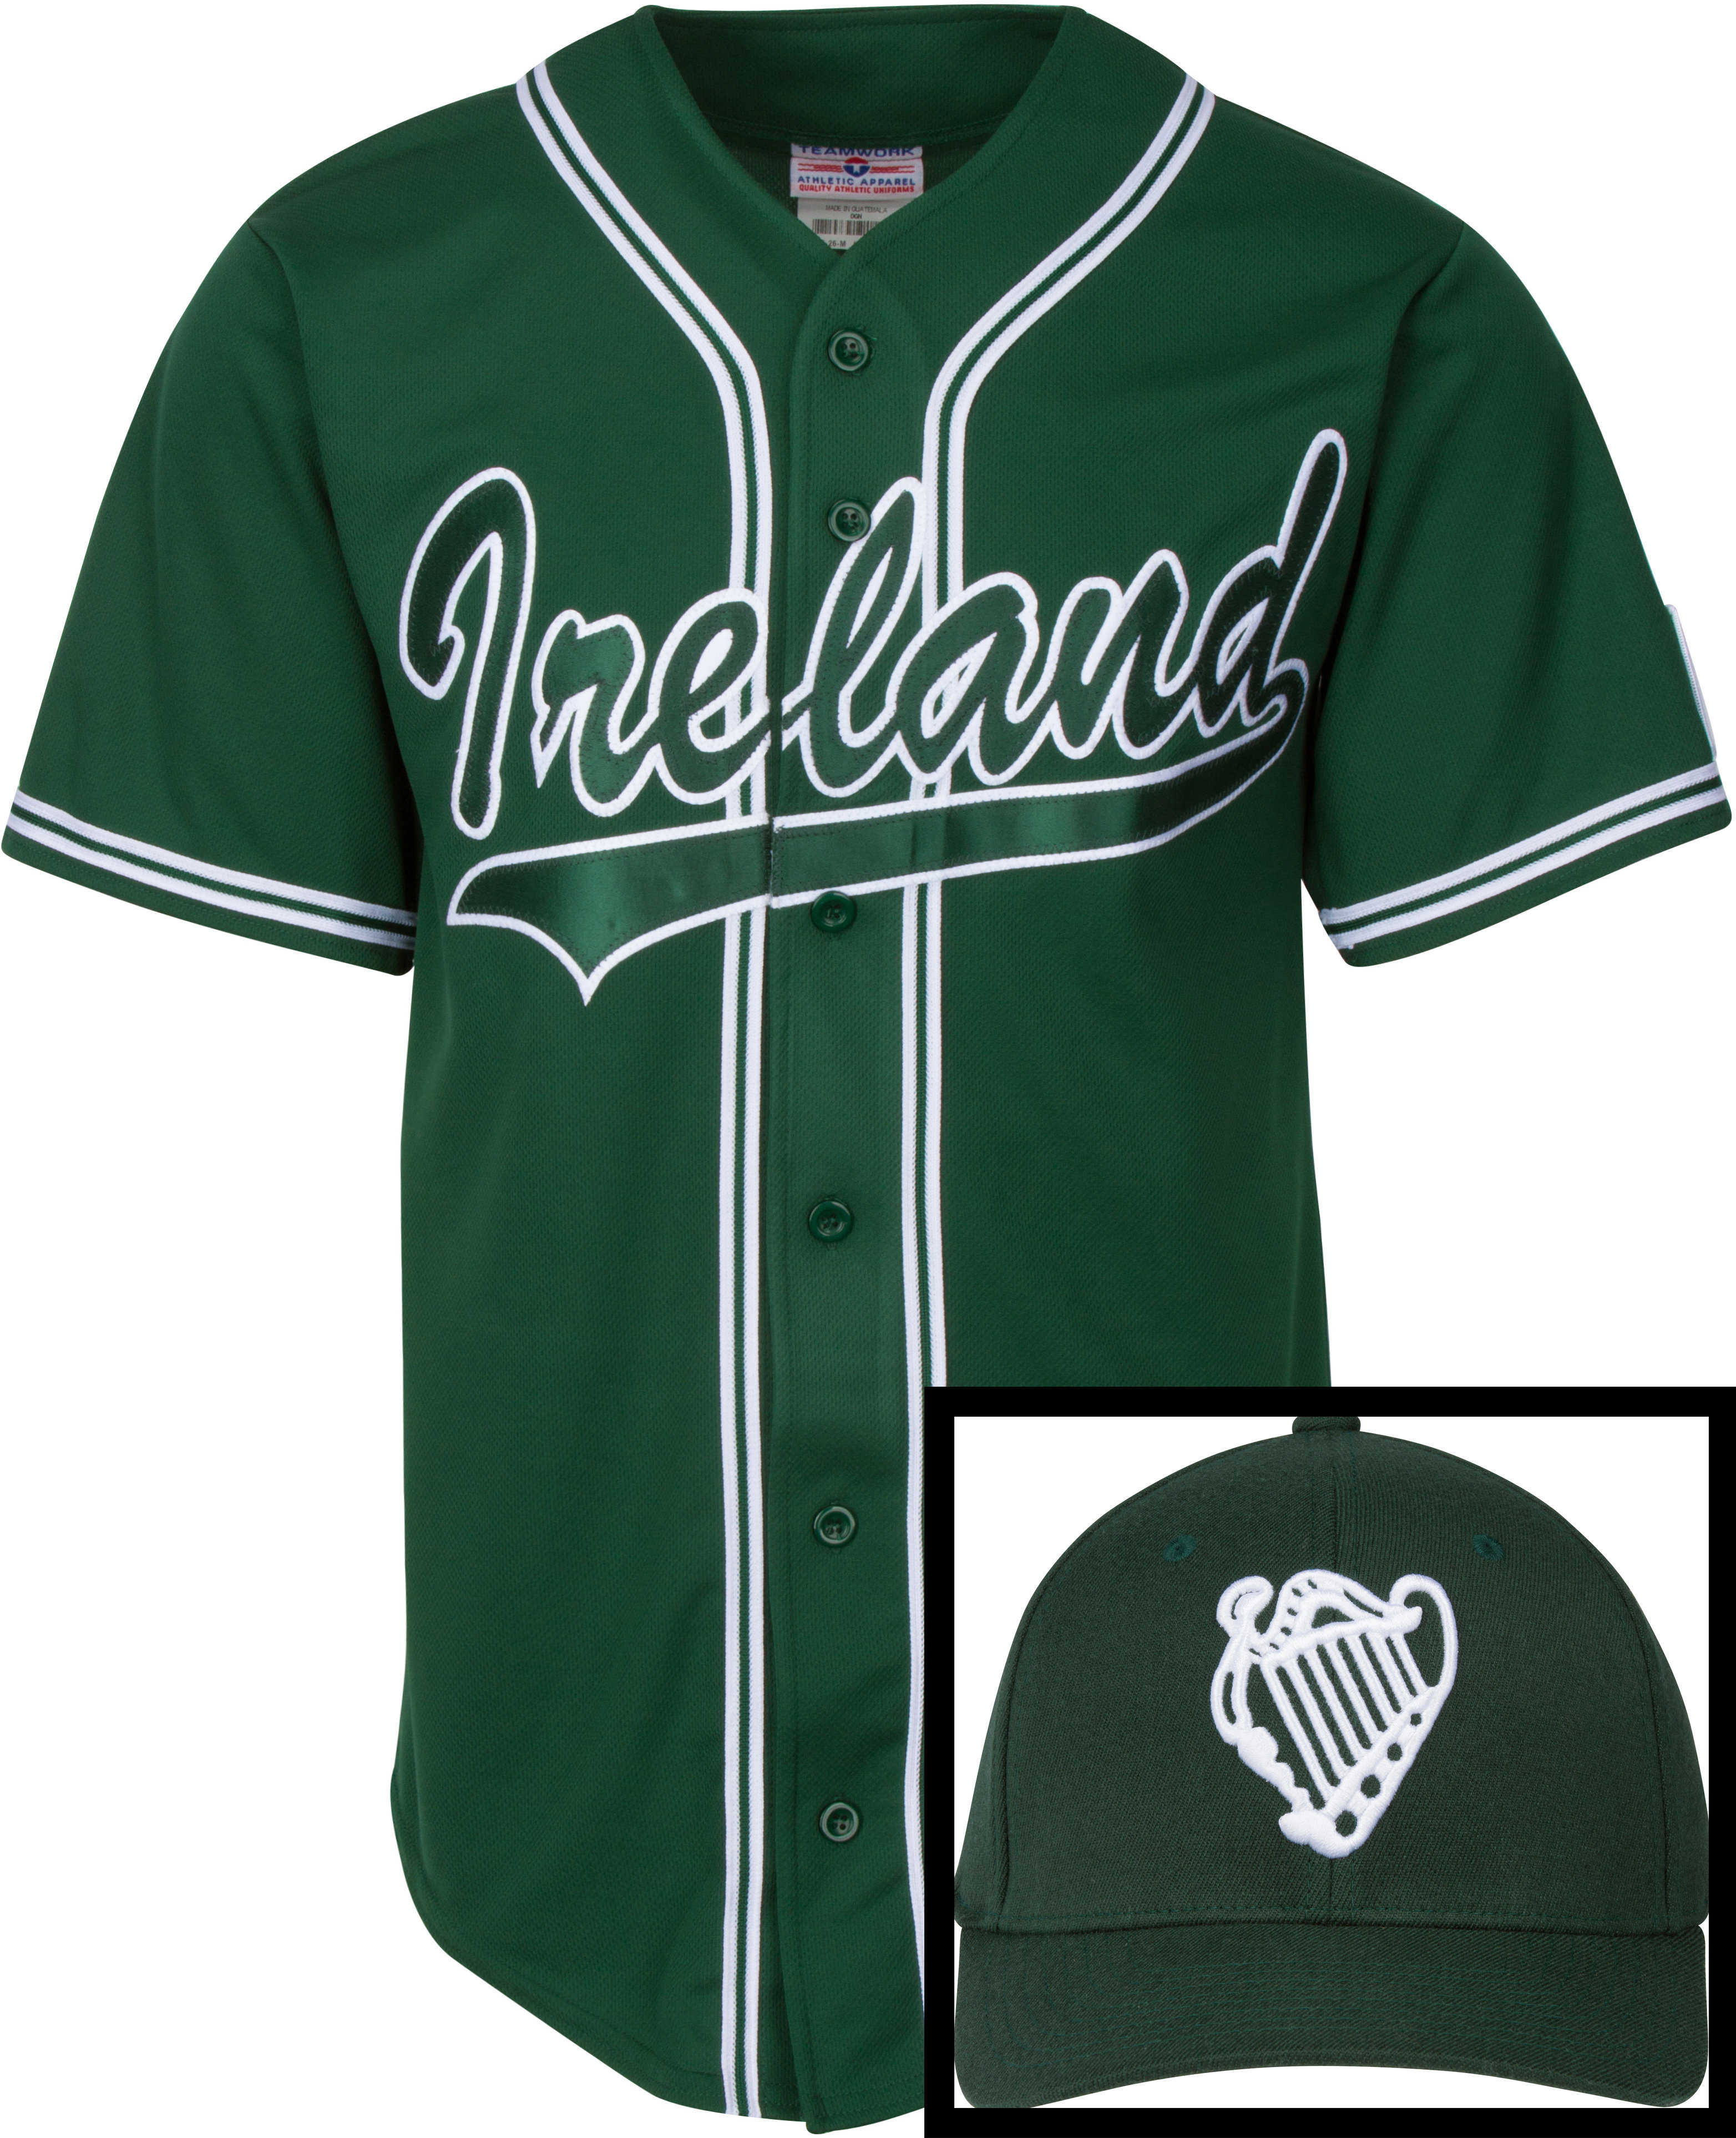 Ireland Baseball Jersey and Free Cap (Limited Time Offer) JerseyFreeCapOffer